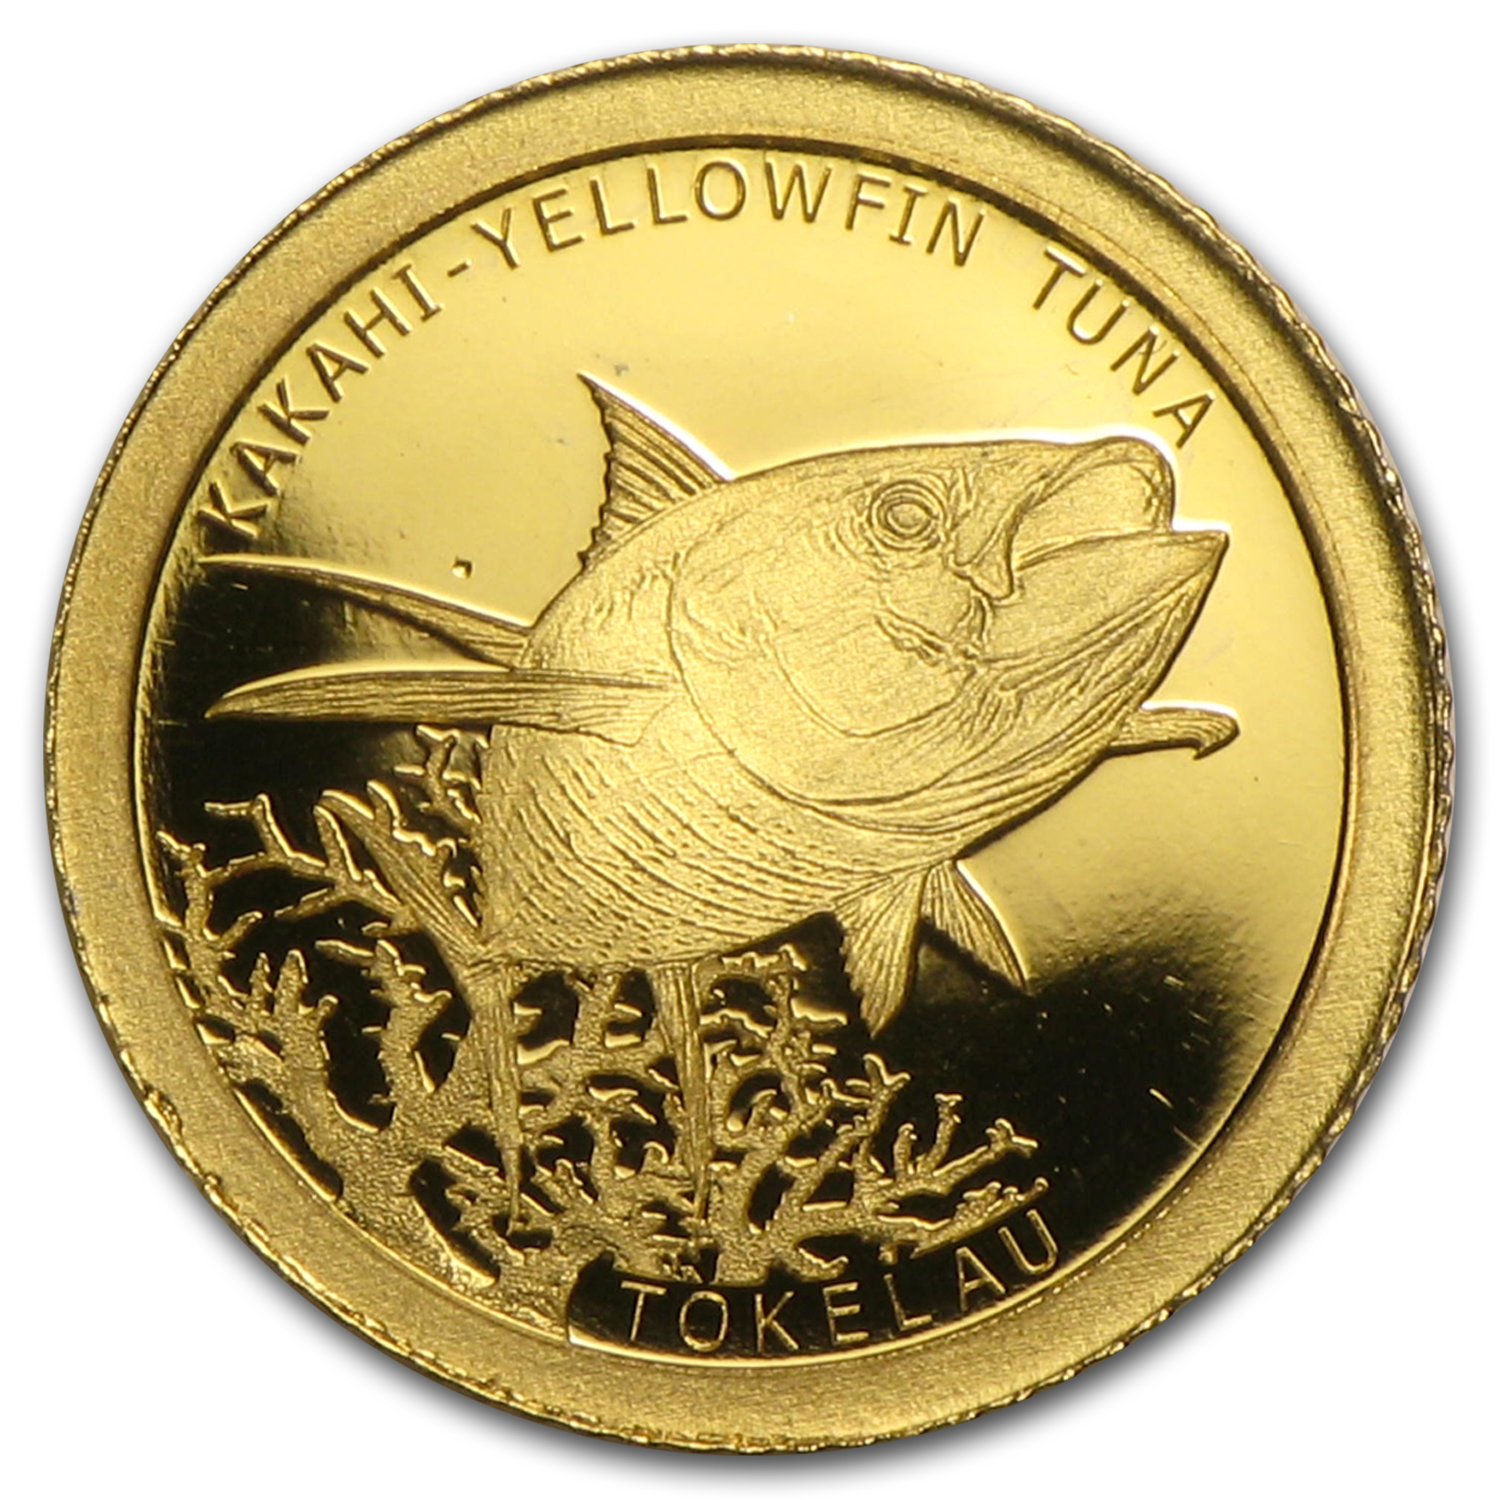 2015 Tokelau 1/2 gram Proof Gold $5 Kakahi Yellowfin Tuna